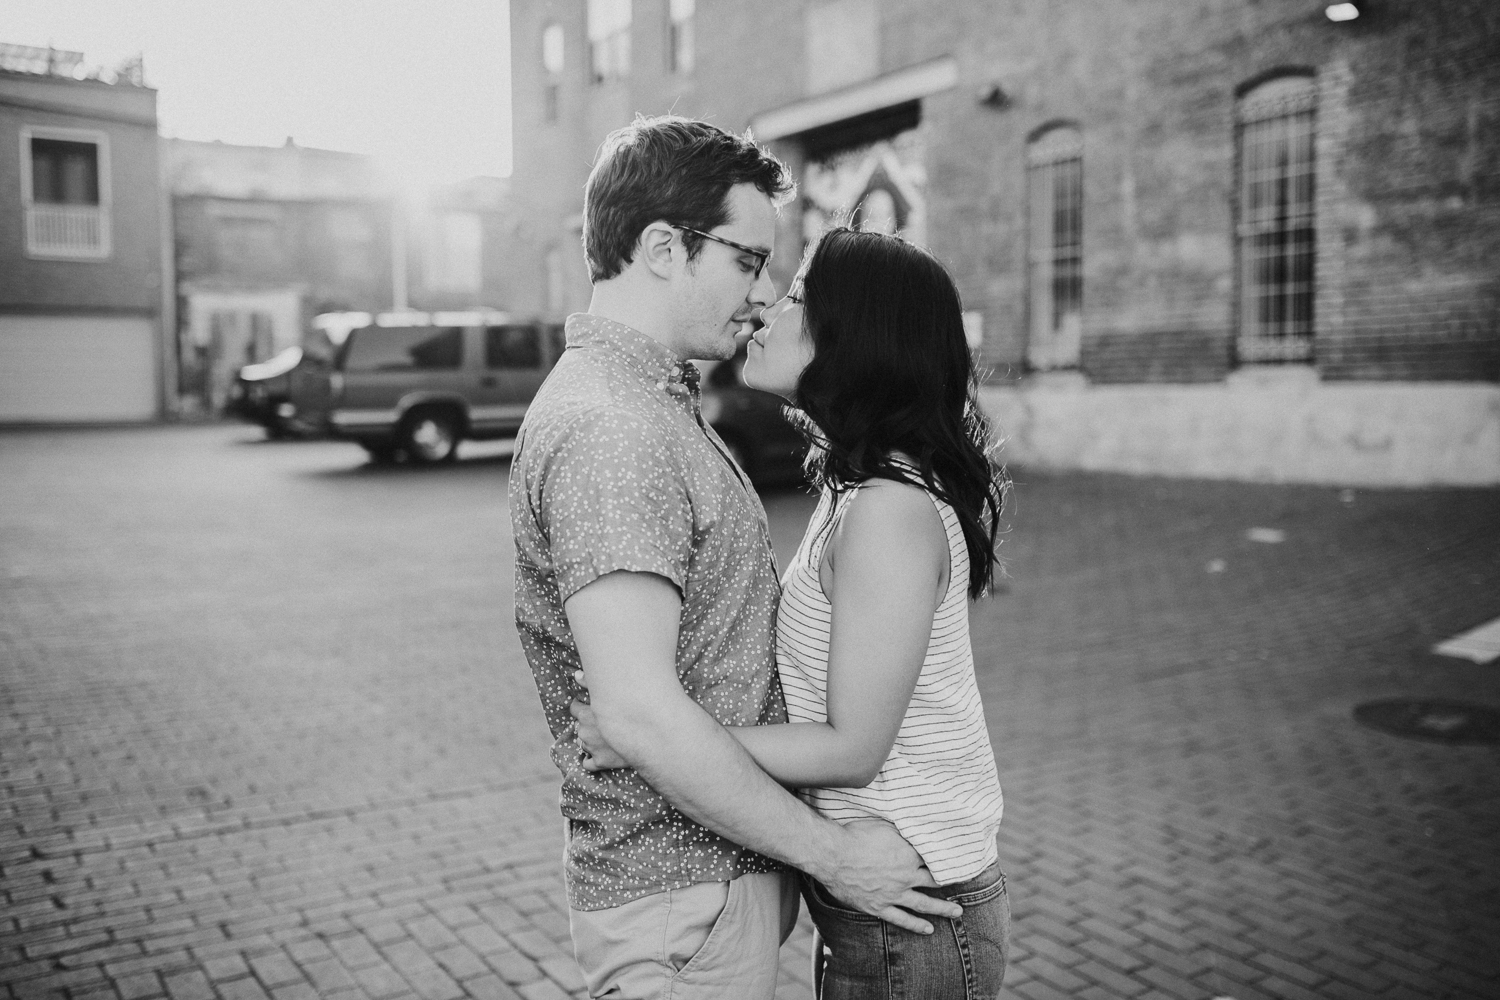 washington_dc_blagden_alley_engagement_photographer-35.jpg